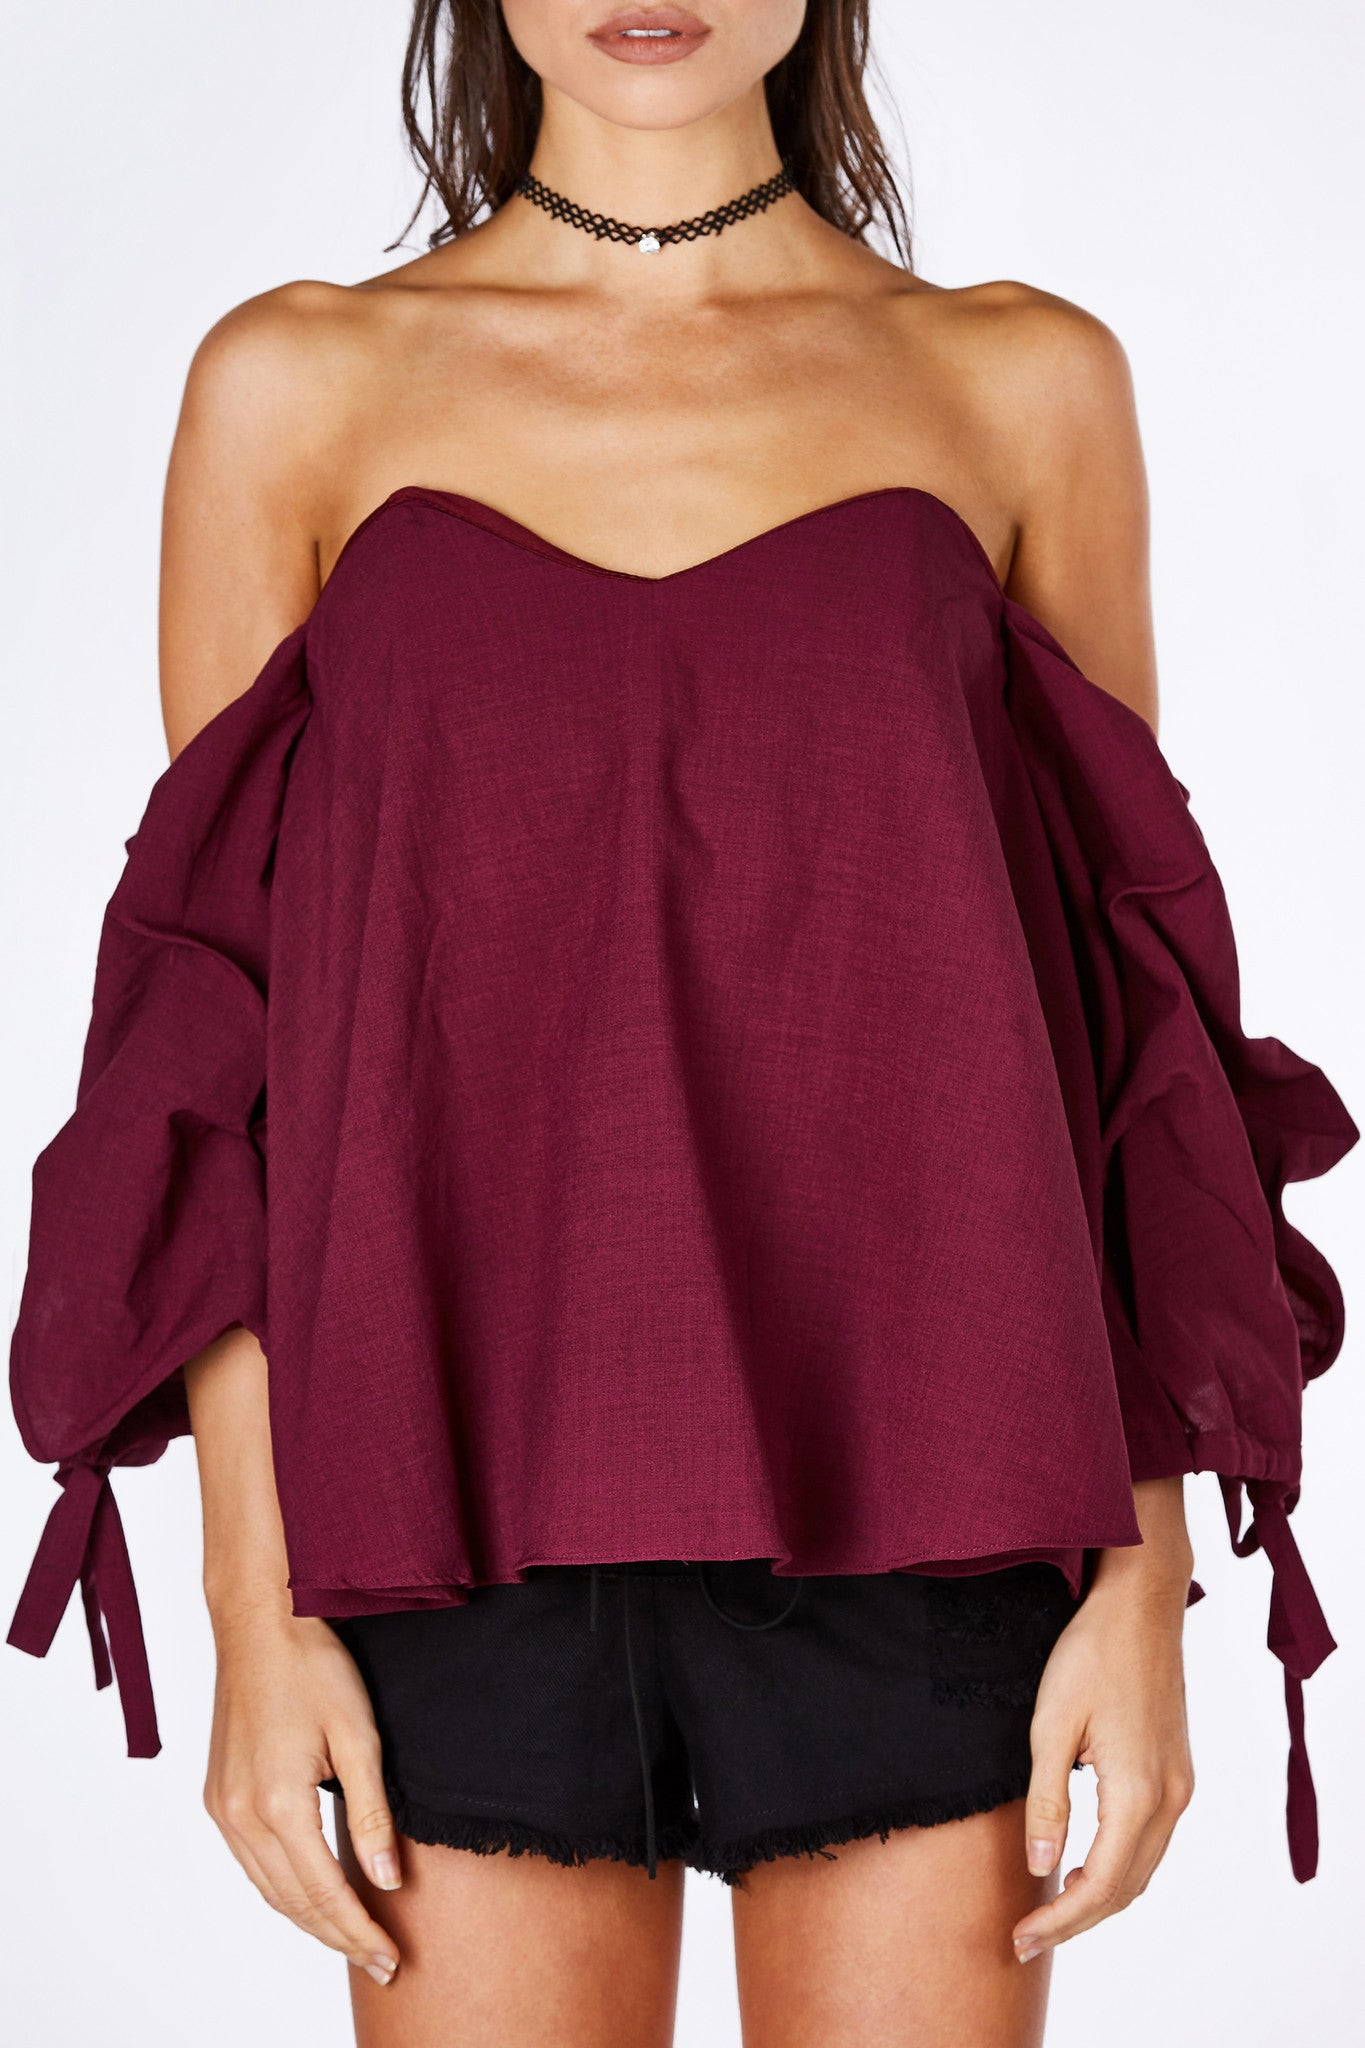 An adorable off shoulder top with a flattering sweet heart neckline. Fun bubbly sleeves with a soft draping effect. Features a tie at each end for added detail. Lined at bust with wiring for structure. Hidden zip closure for a clean finish.